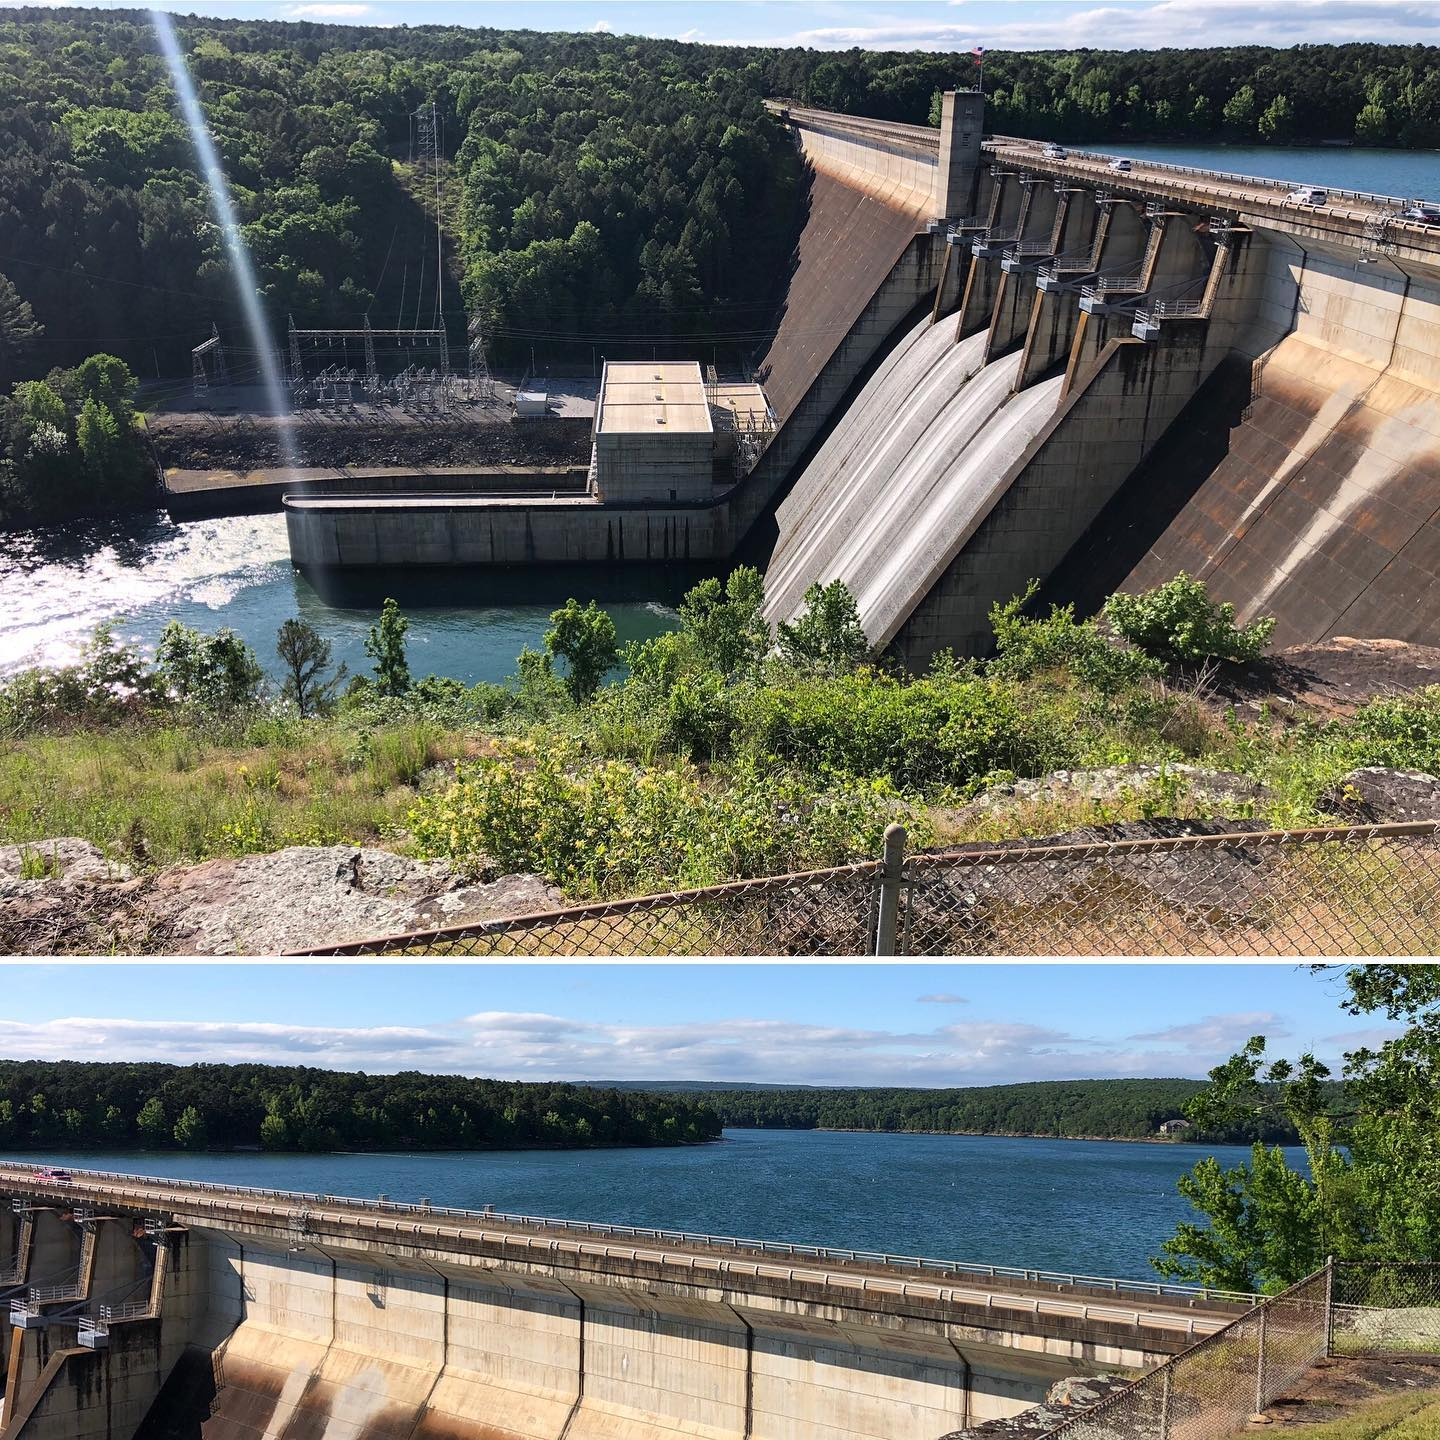 Scenic stop at Greers Ferry Dam in Arkansas today while travel